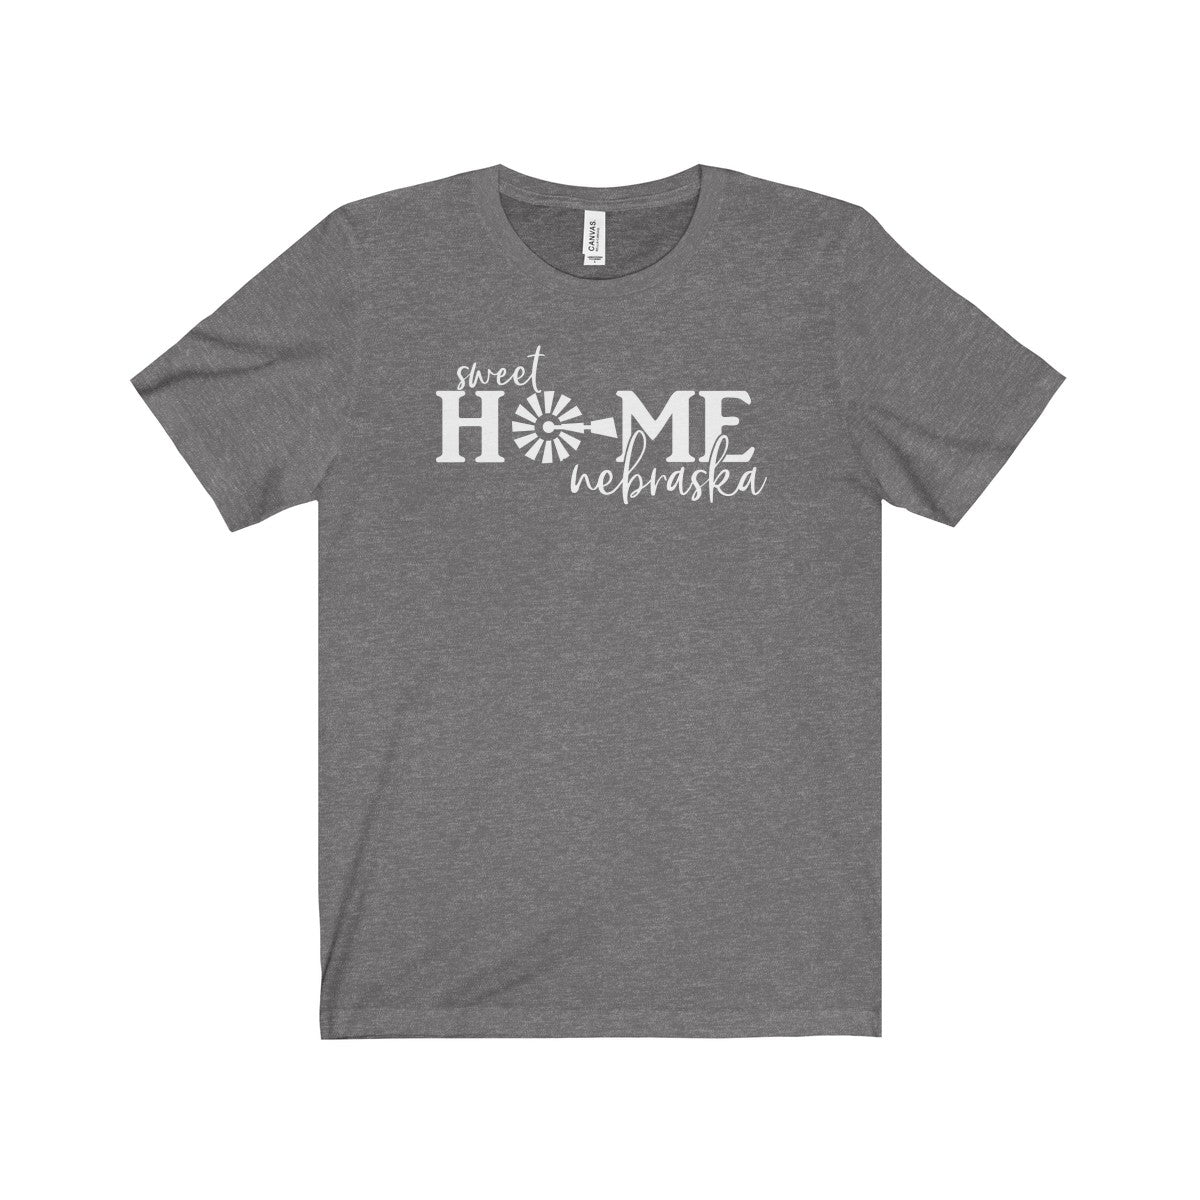 Sweet Home Nebraska Unisex Jersey Short Sleeve Tee